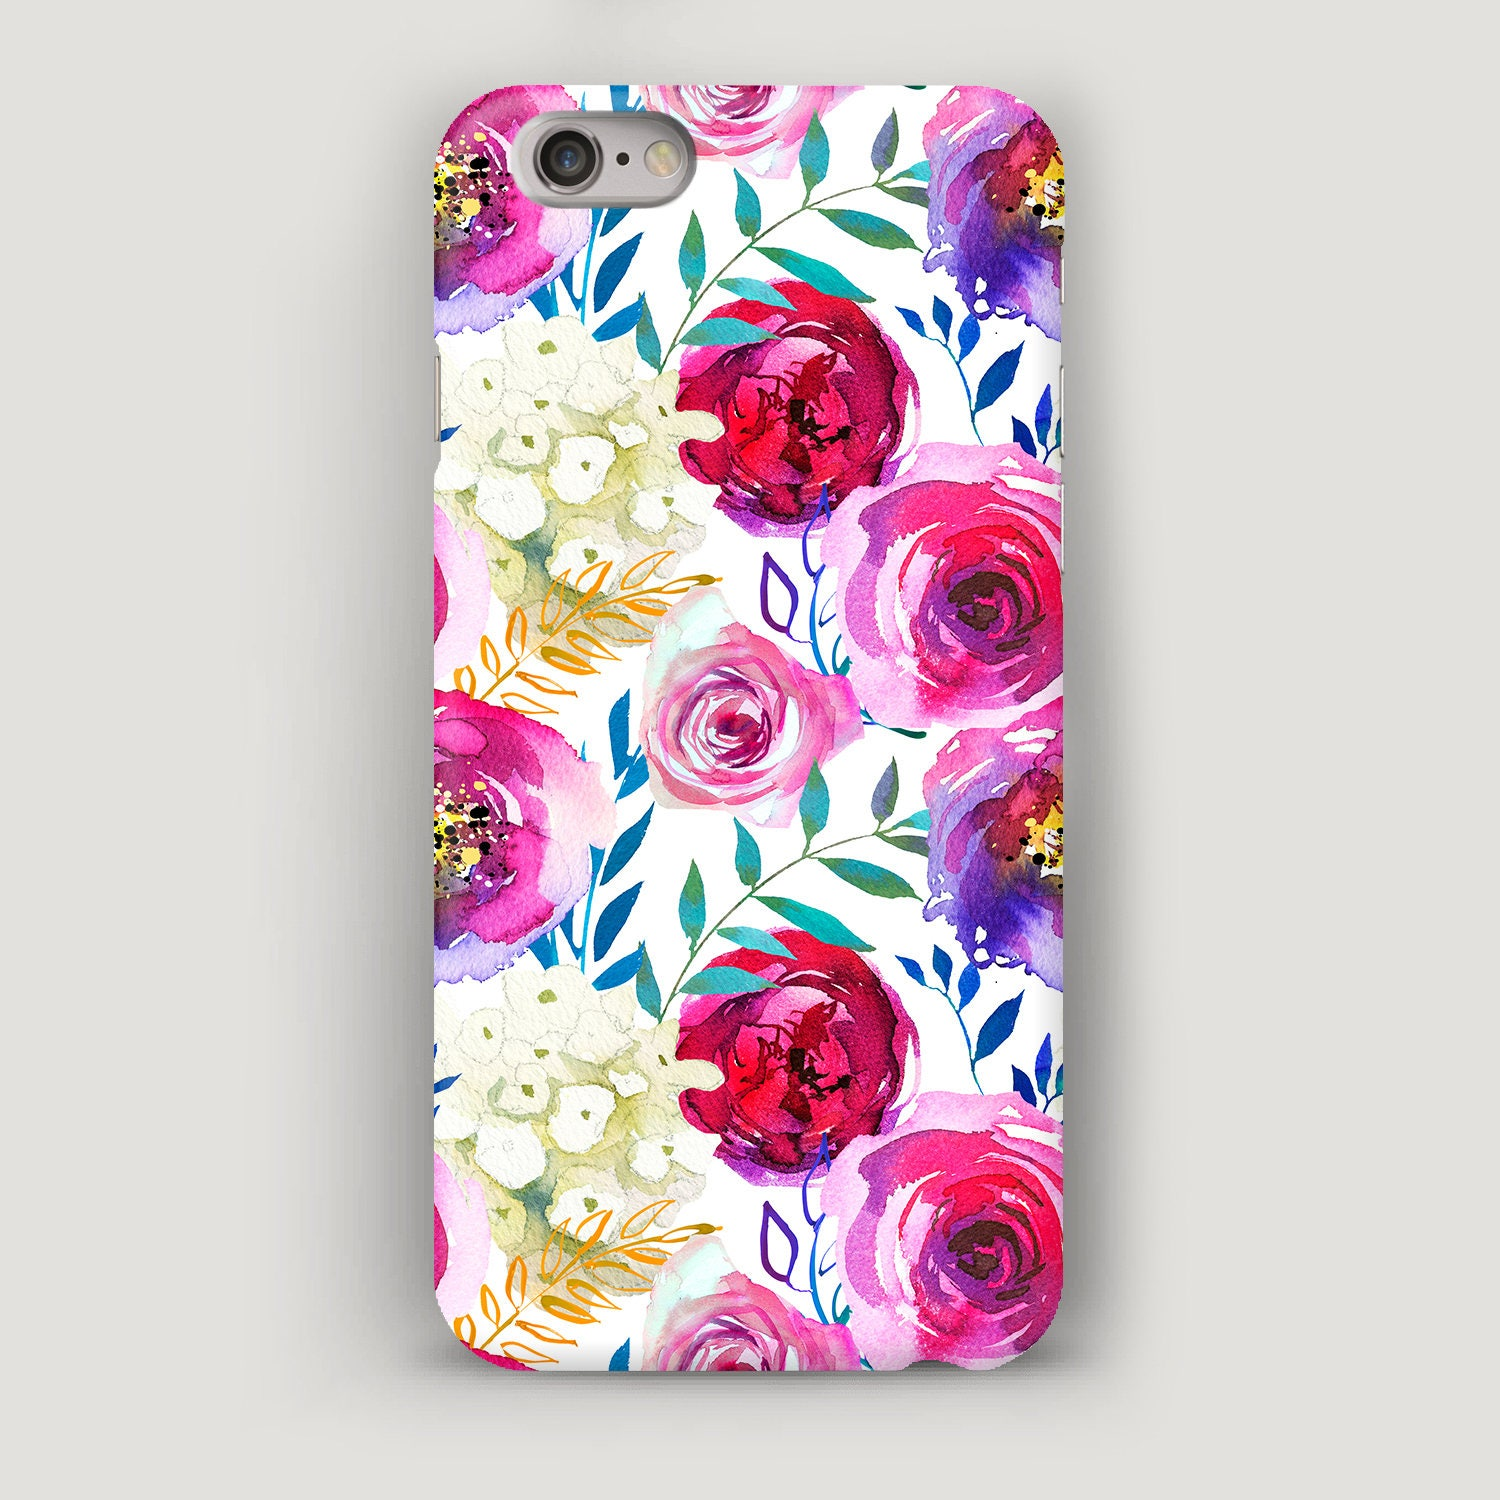 Watercolor Pattern Phone Case Floral Iphone 6s Plus Case Etsy